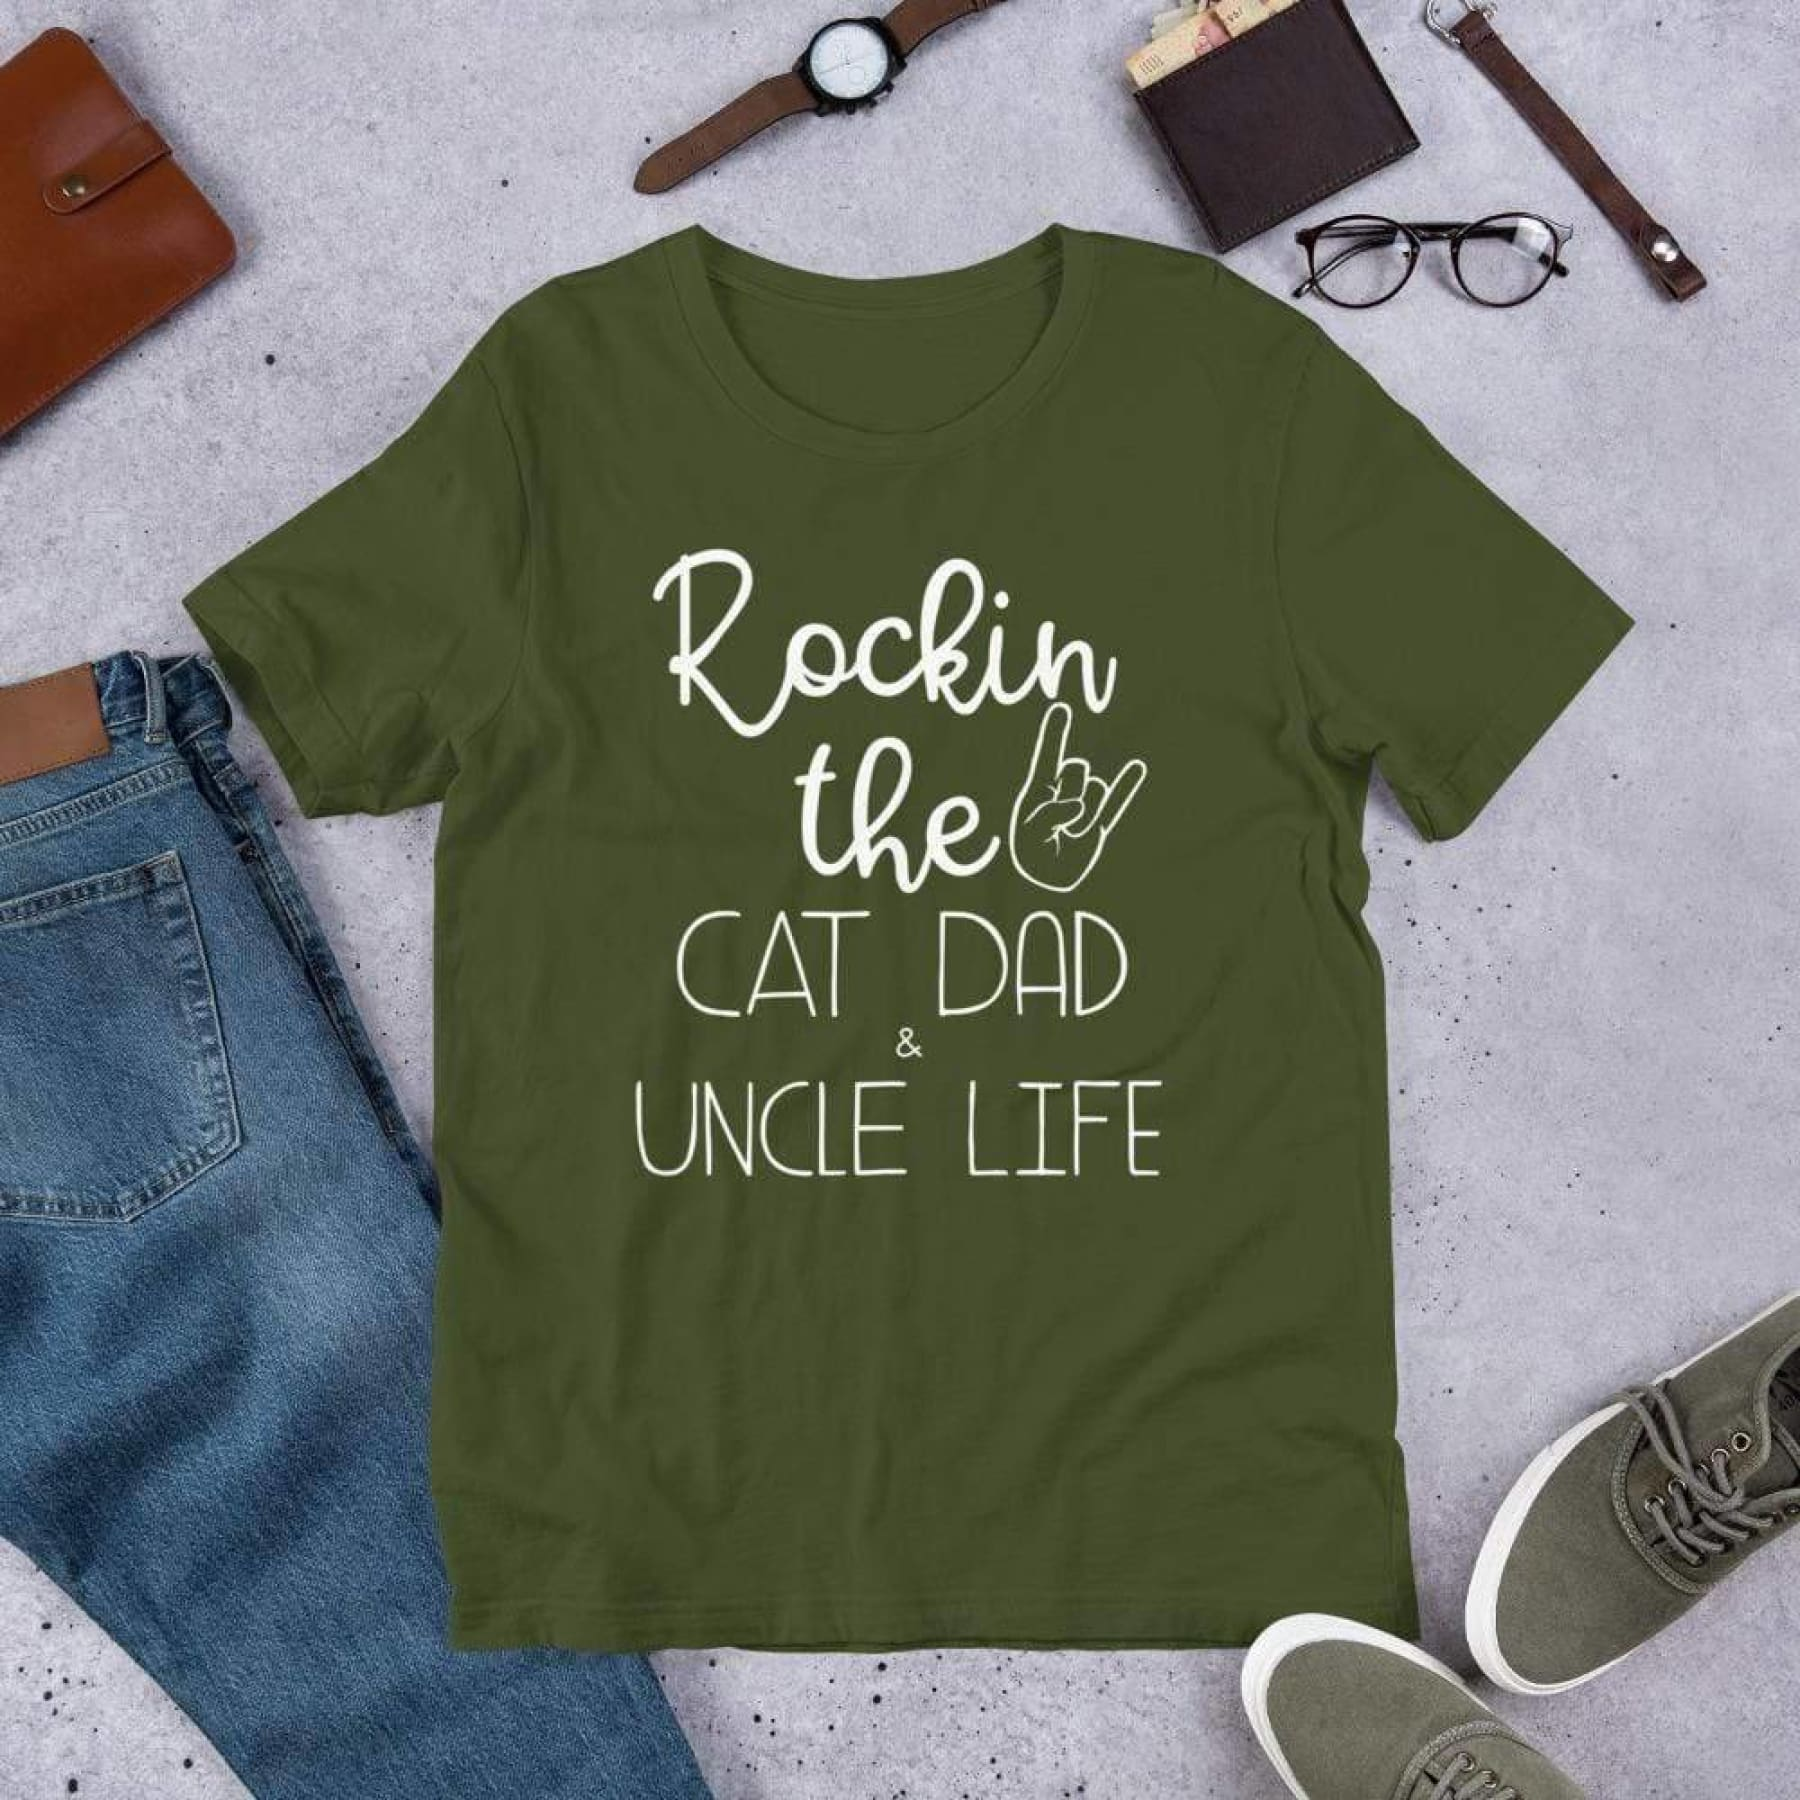 Rockin The Cat Dad & Uncle Life Tee.